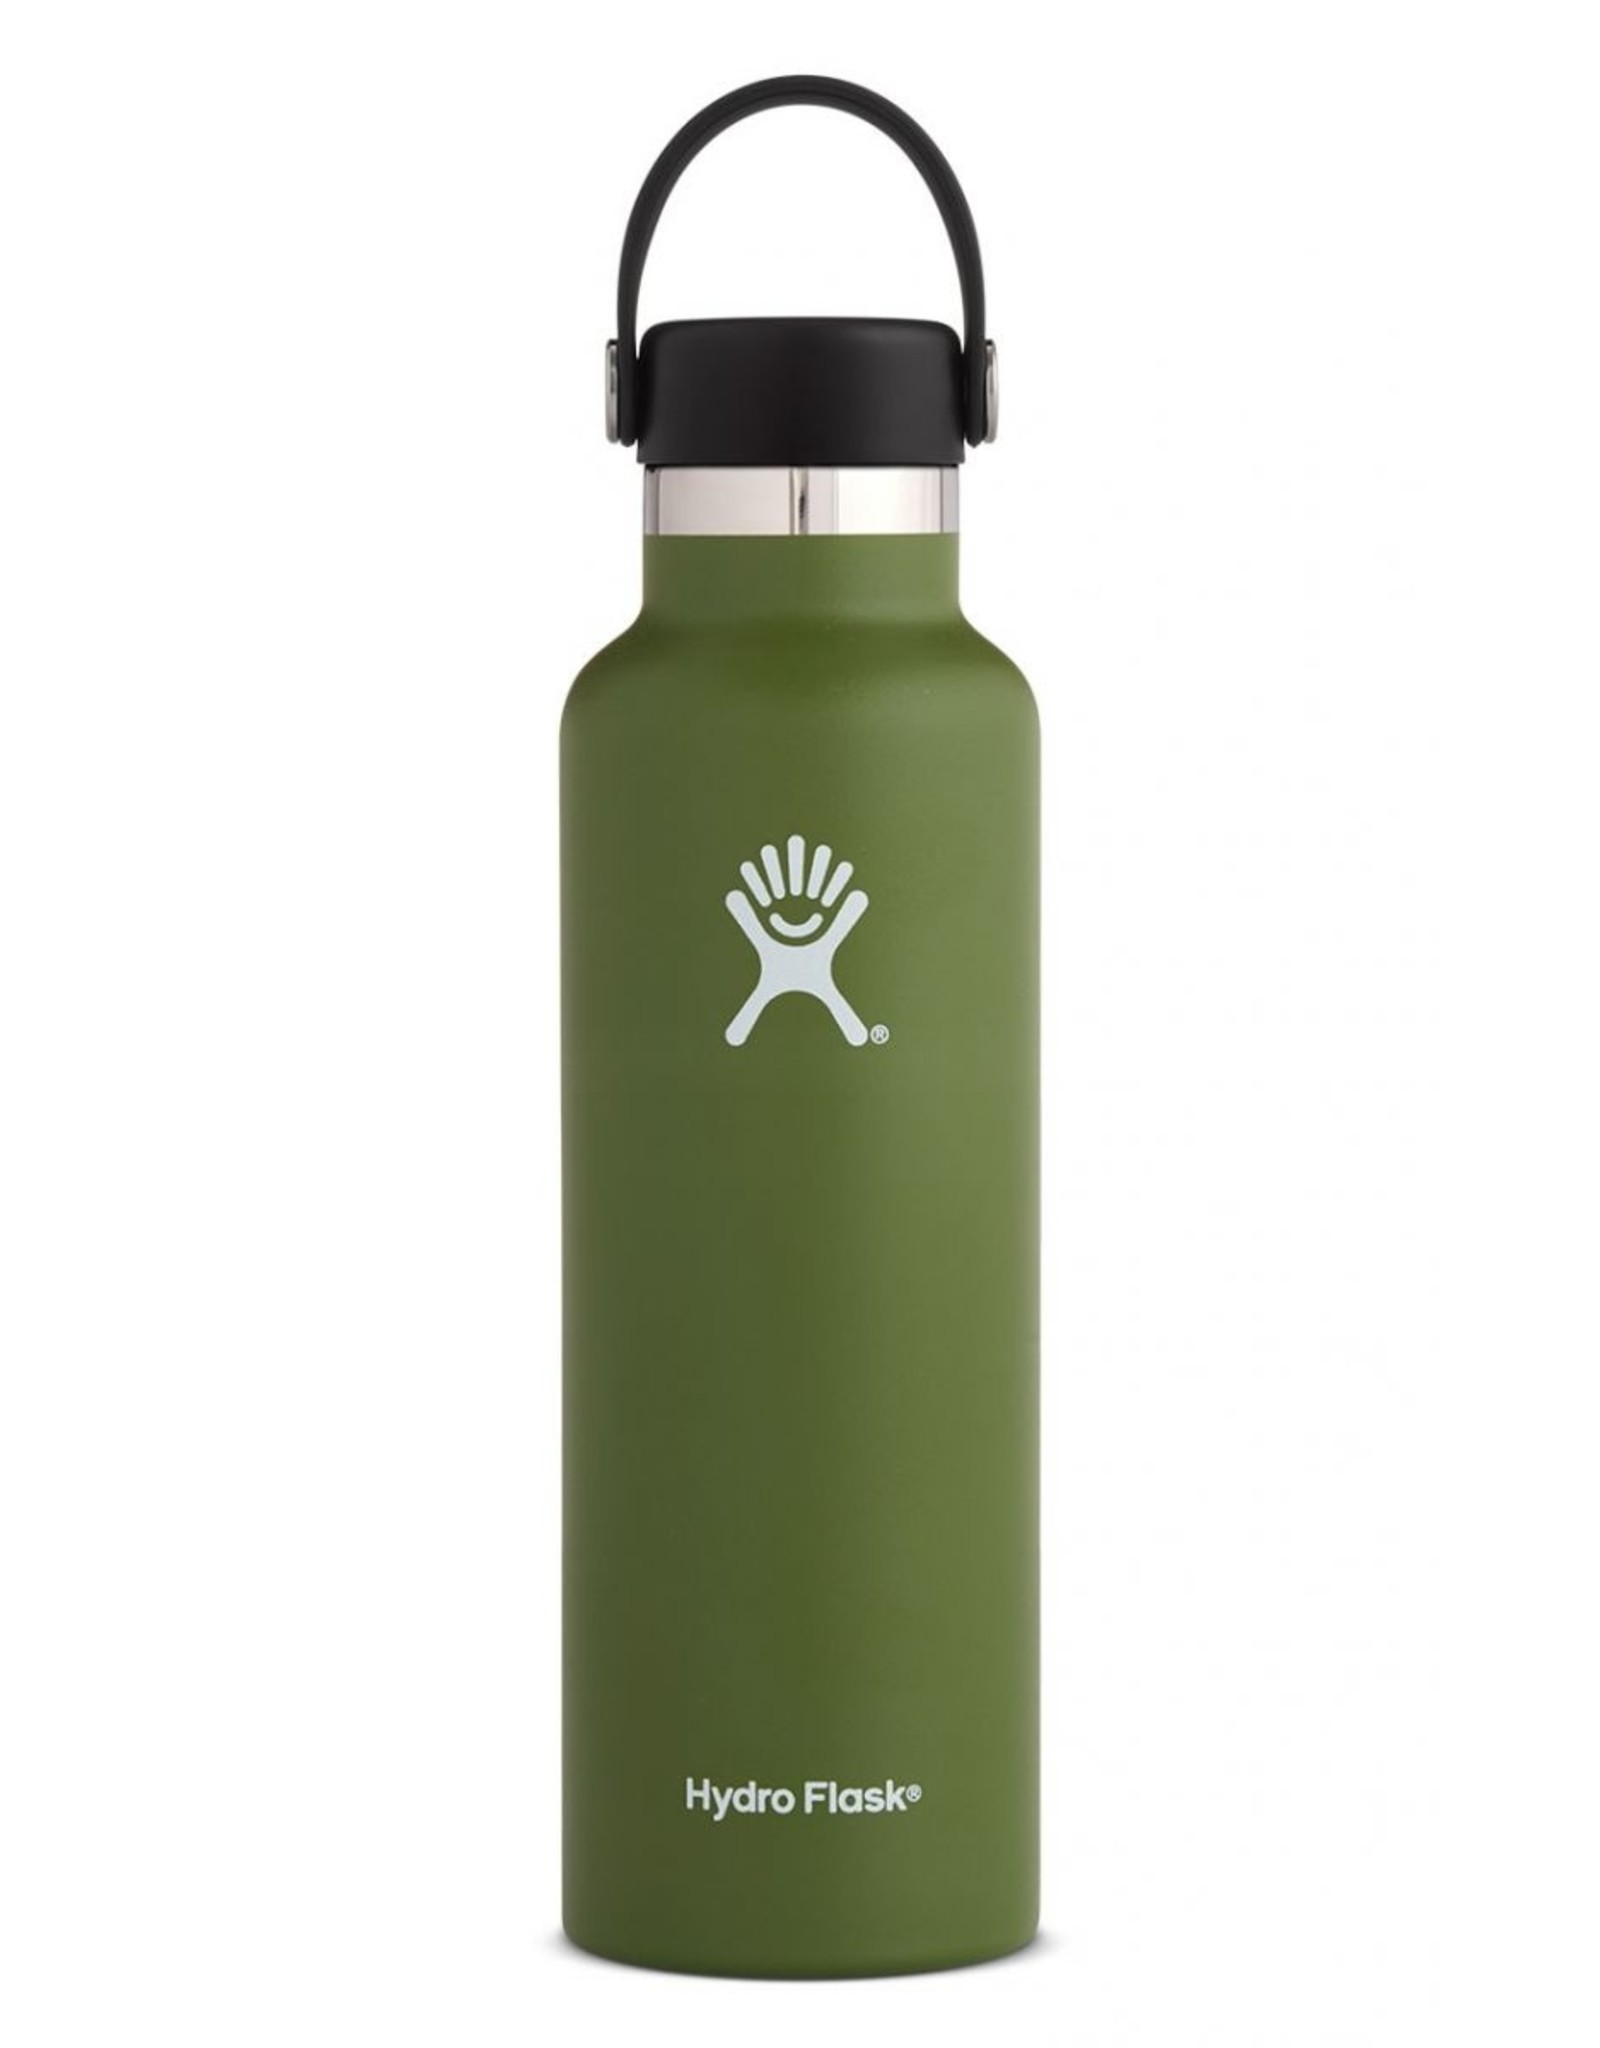 HYDRO FLASK HYDRO FLASK 21OZ STANDARD MOUTH BOTTLE-OLIVE